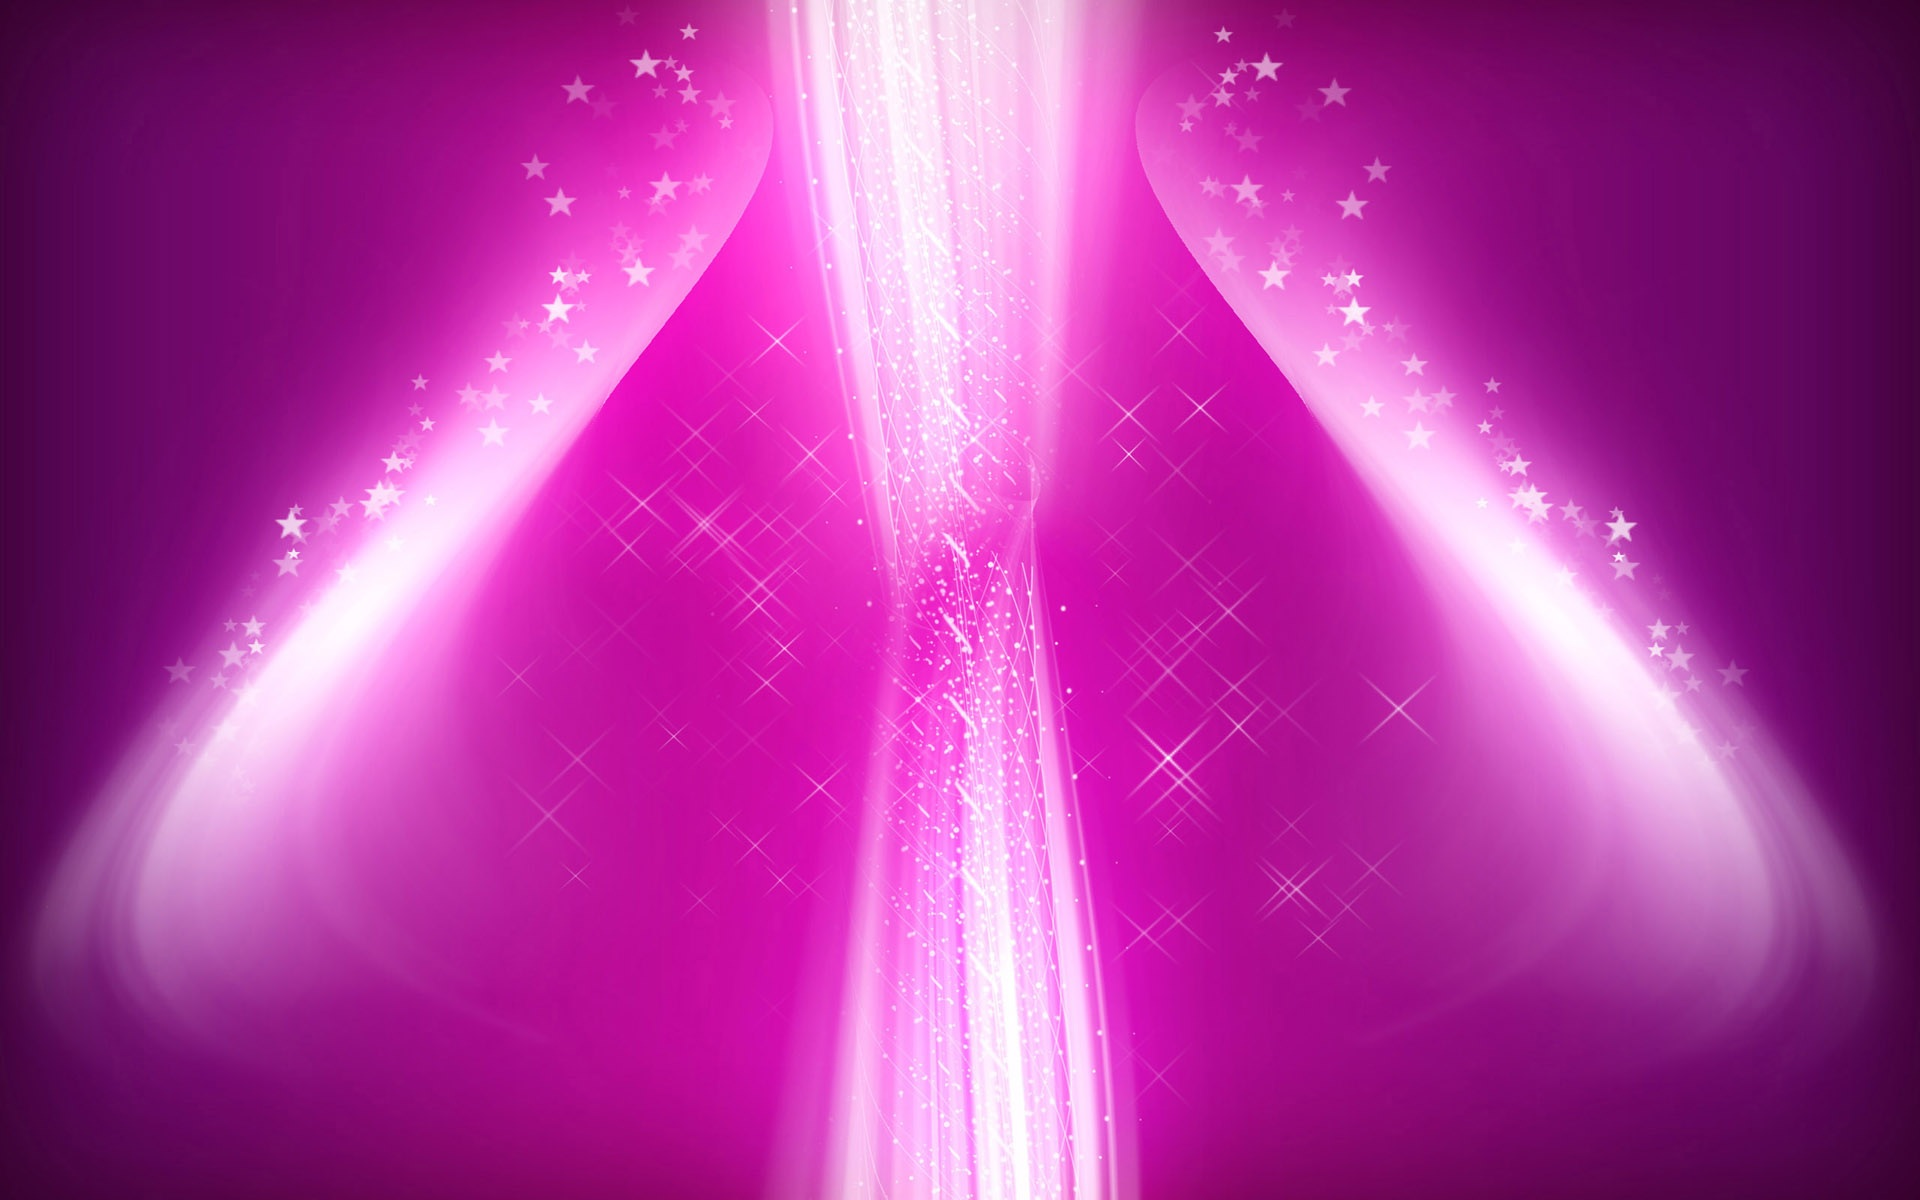 Pink Glow Abstract Wallpapers HD Wallpapers 1920x1200